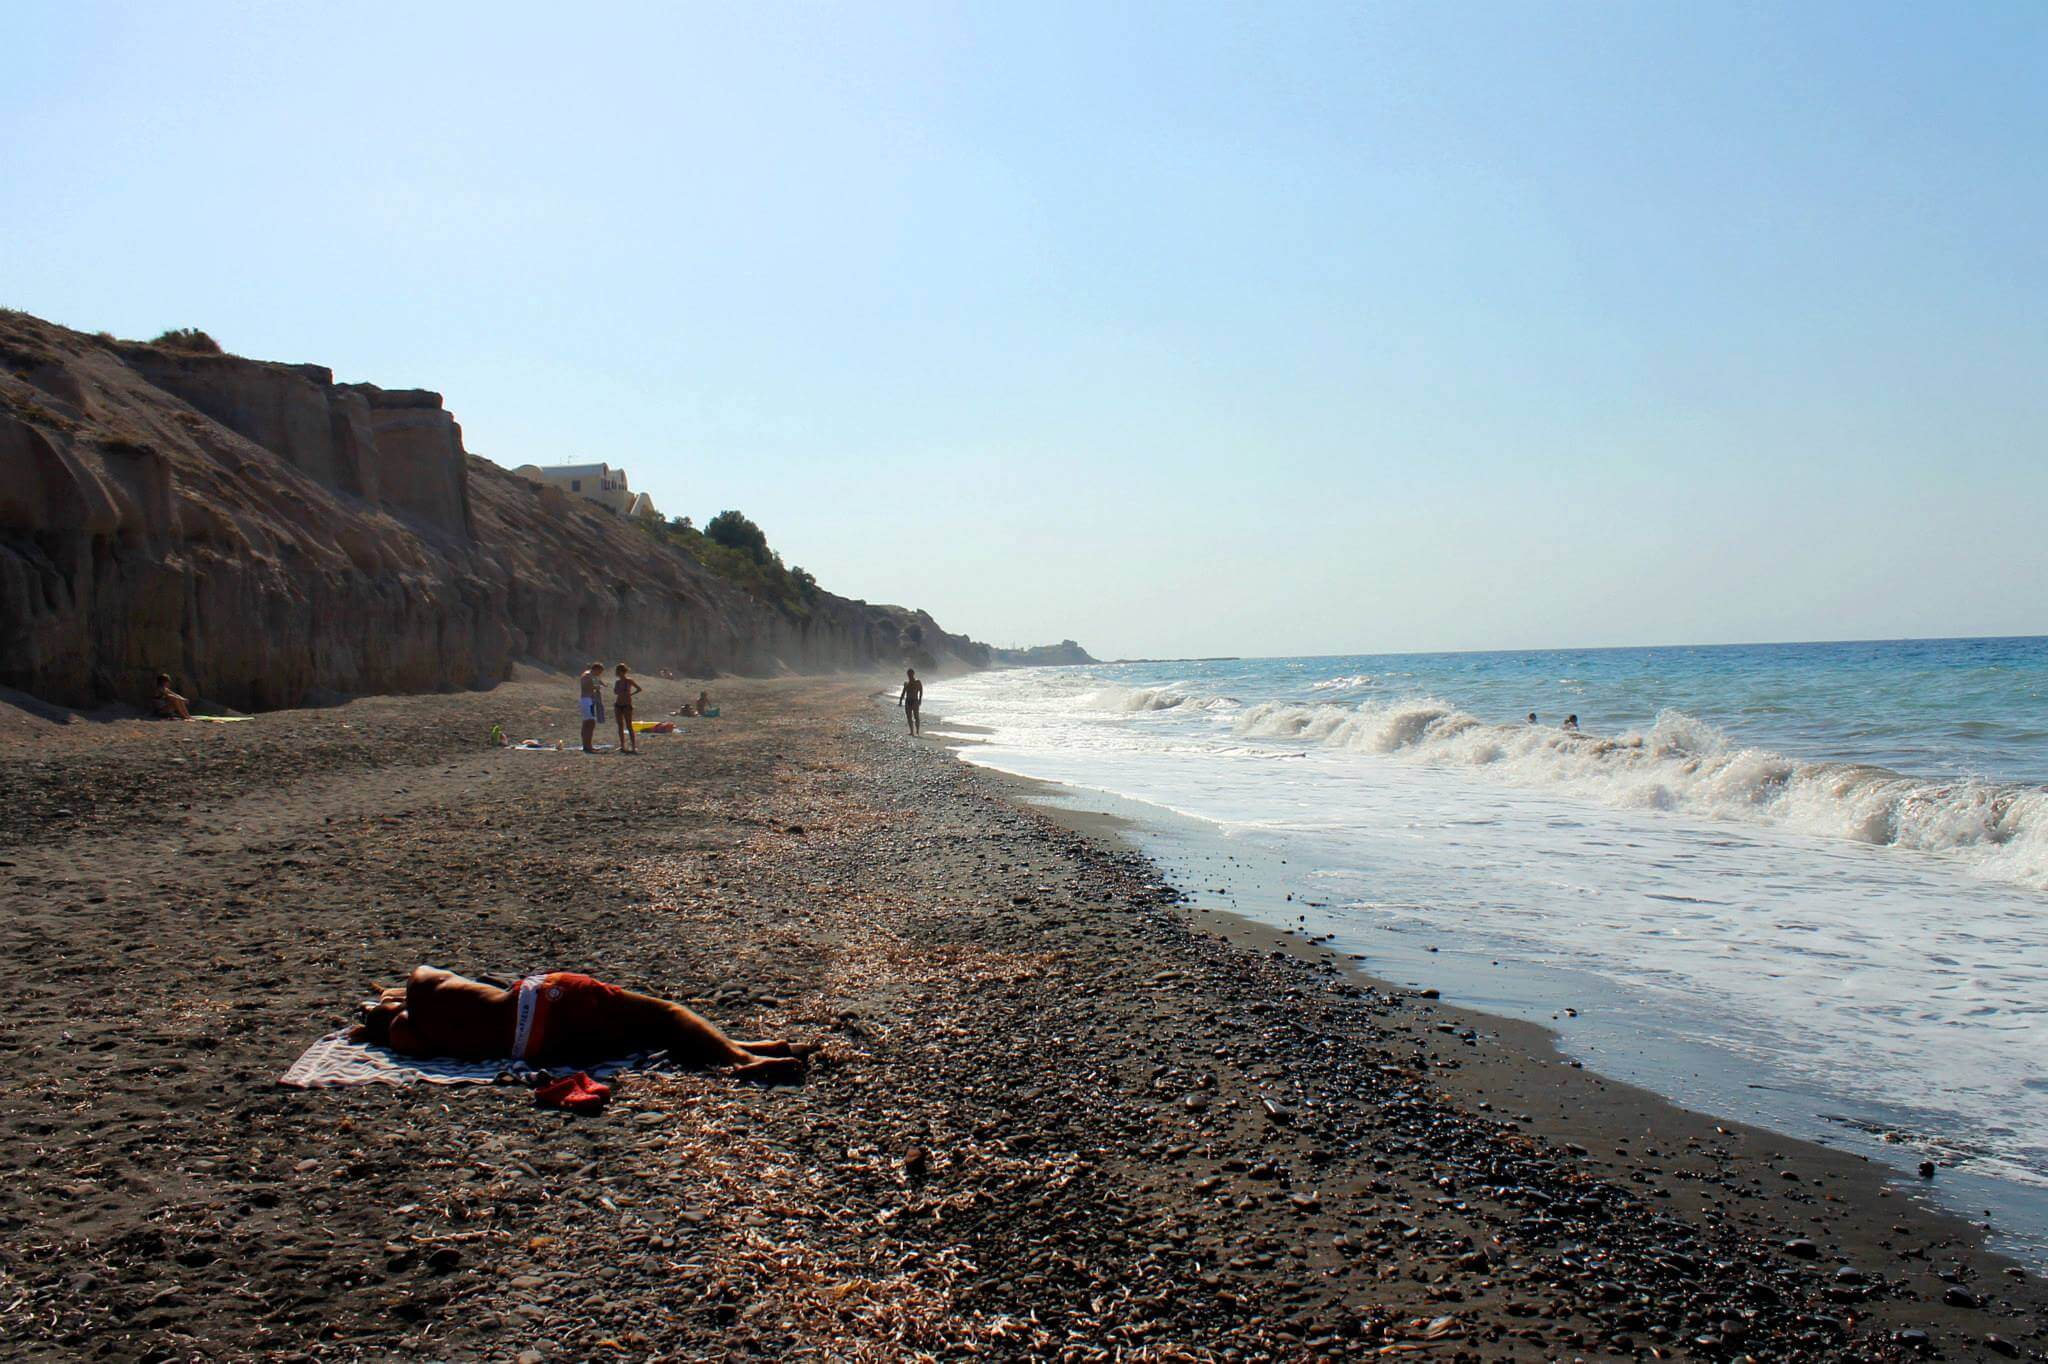 Vouvoulos Beach in Santorini. Taken by Kirstie.